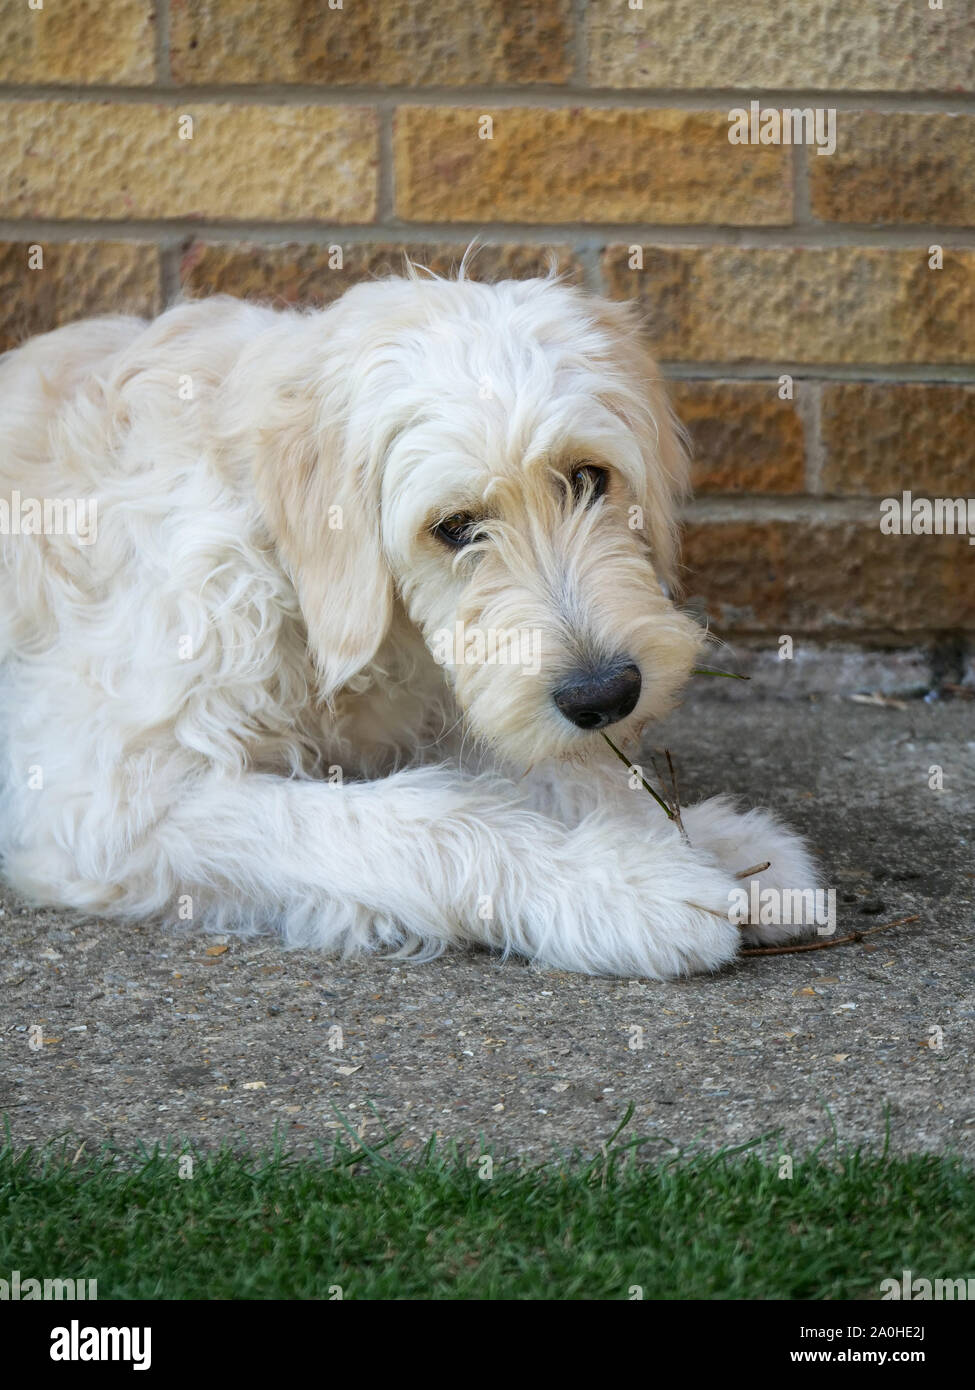 White Goldendoodle Puppy Chewing A Stick Outdoors Stock Photo Alamy